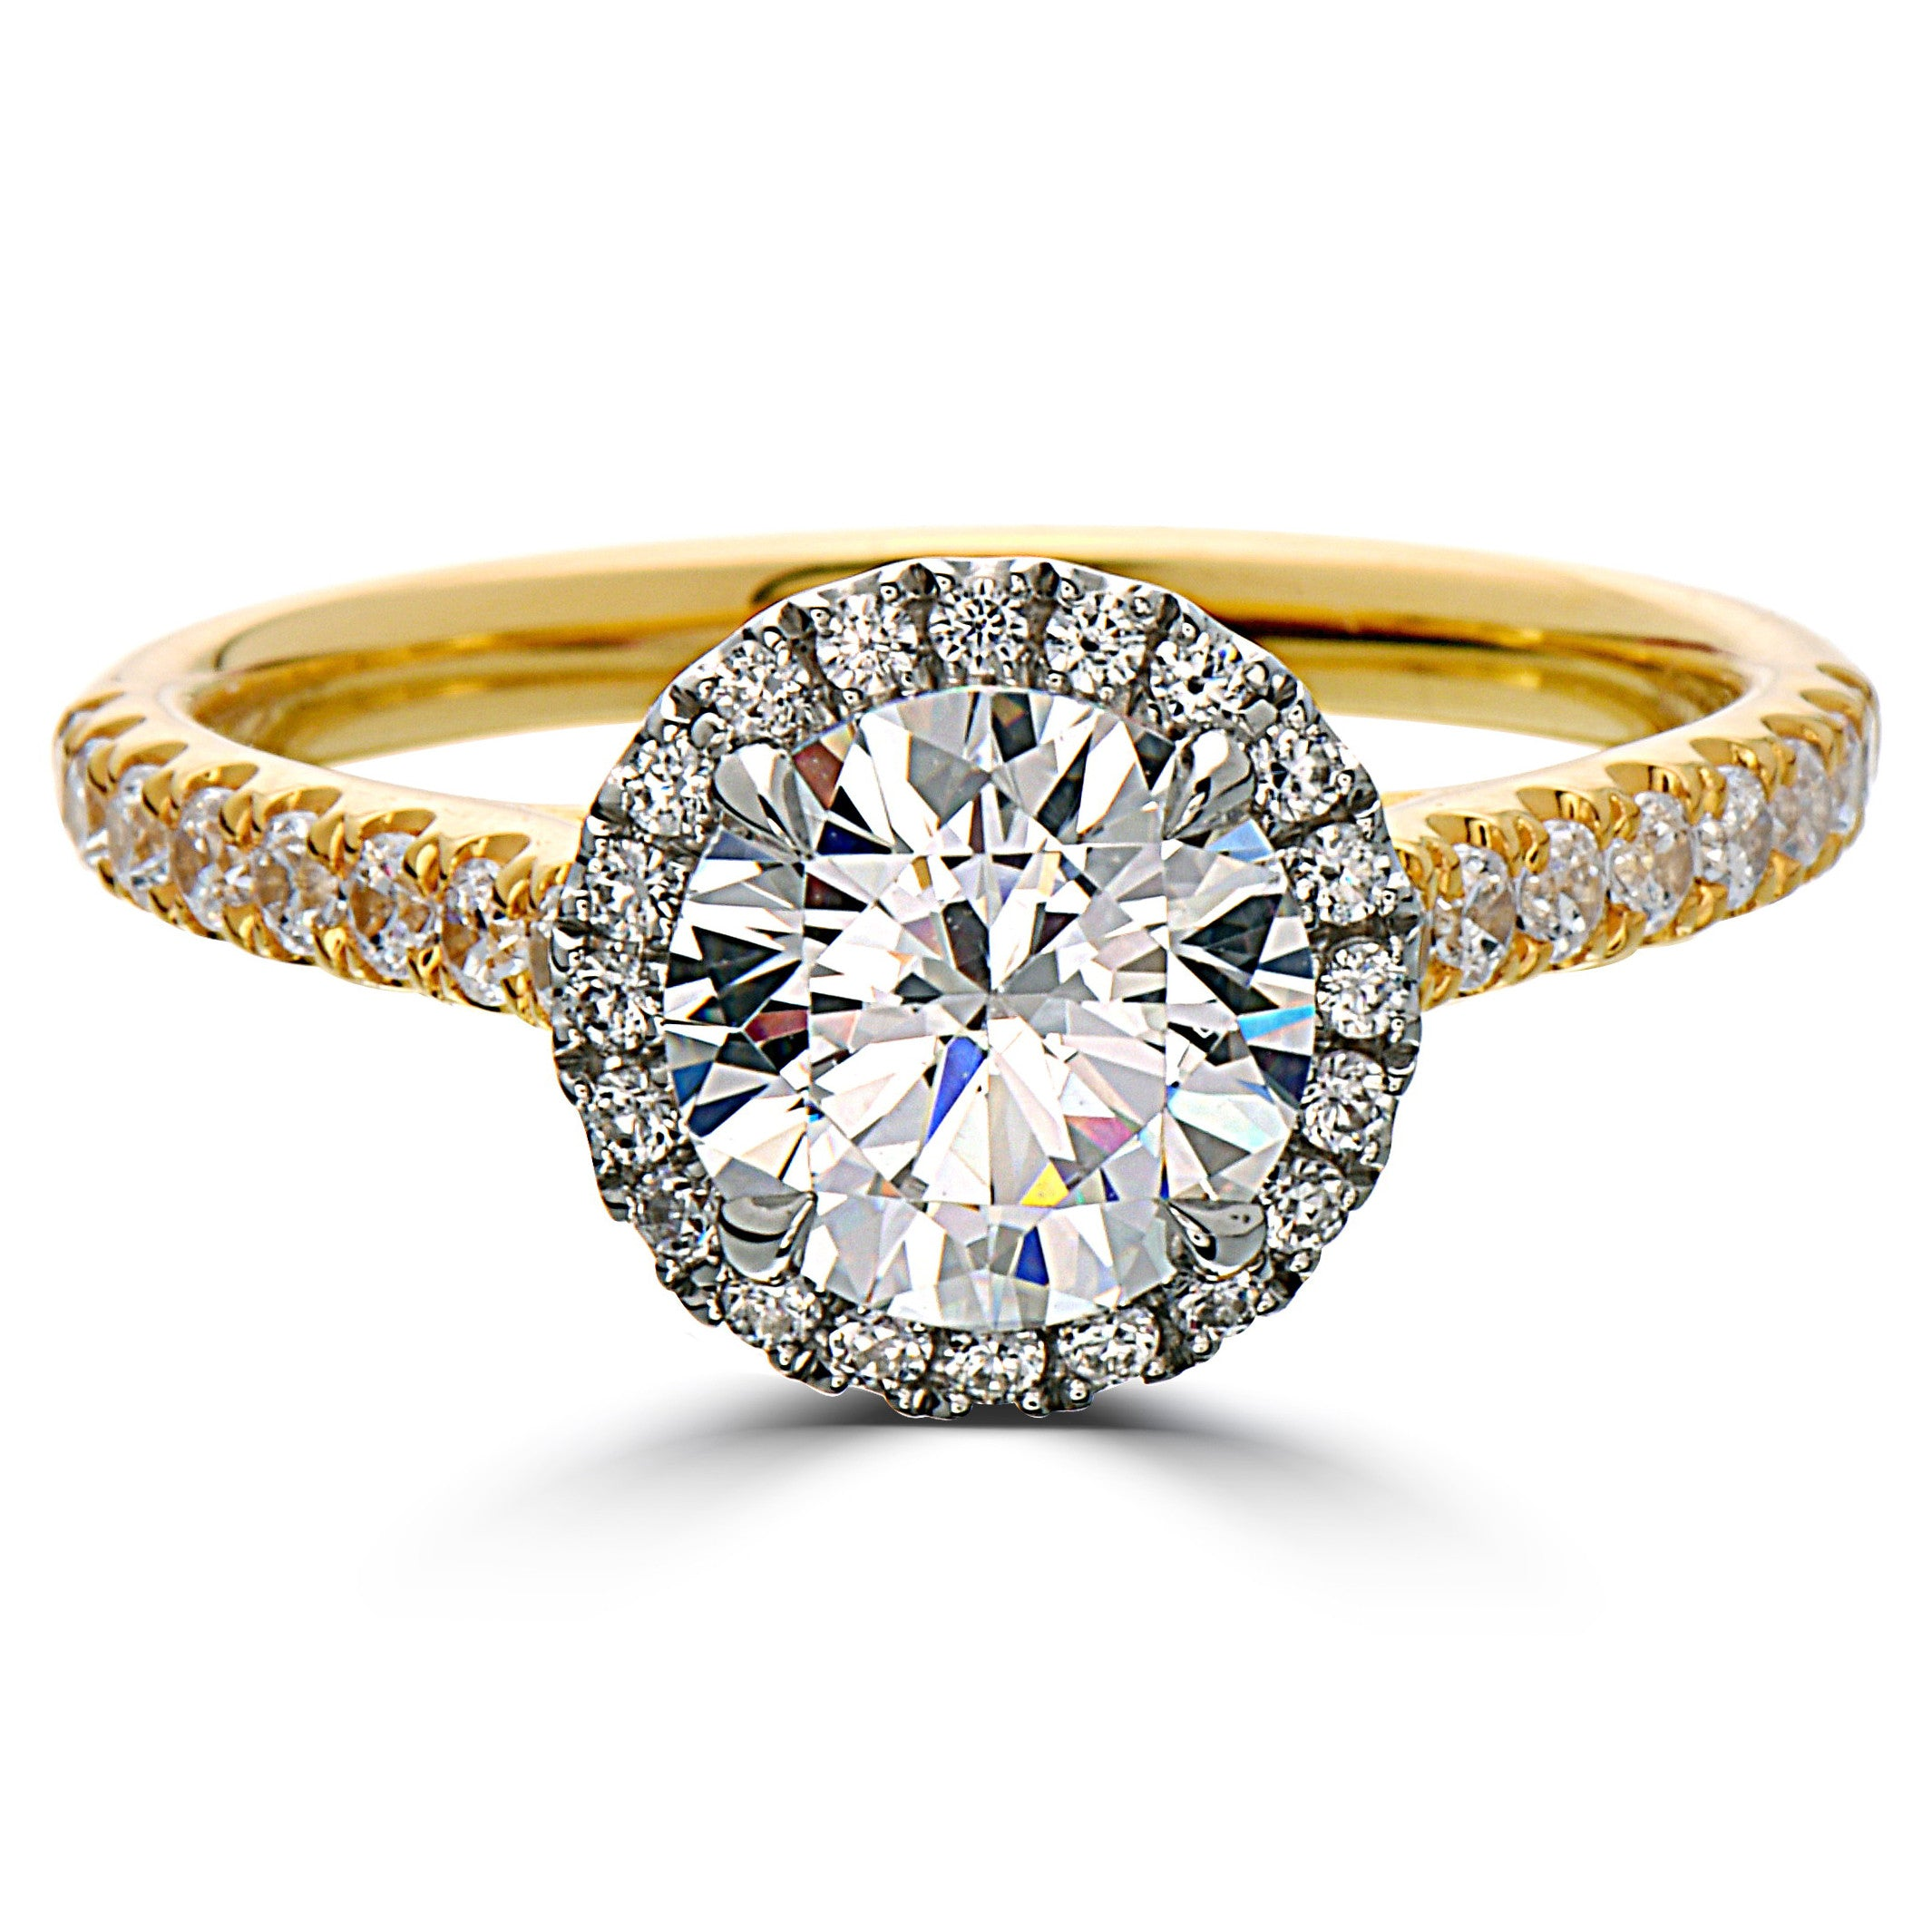 mv diamond ring to gold round zoom en white zm solitaire carat hover cut kaystore kay